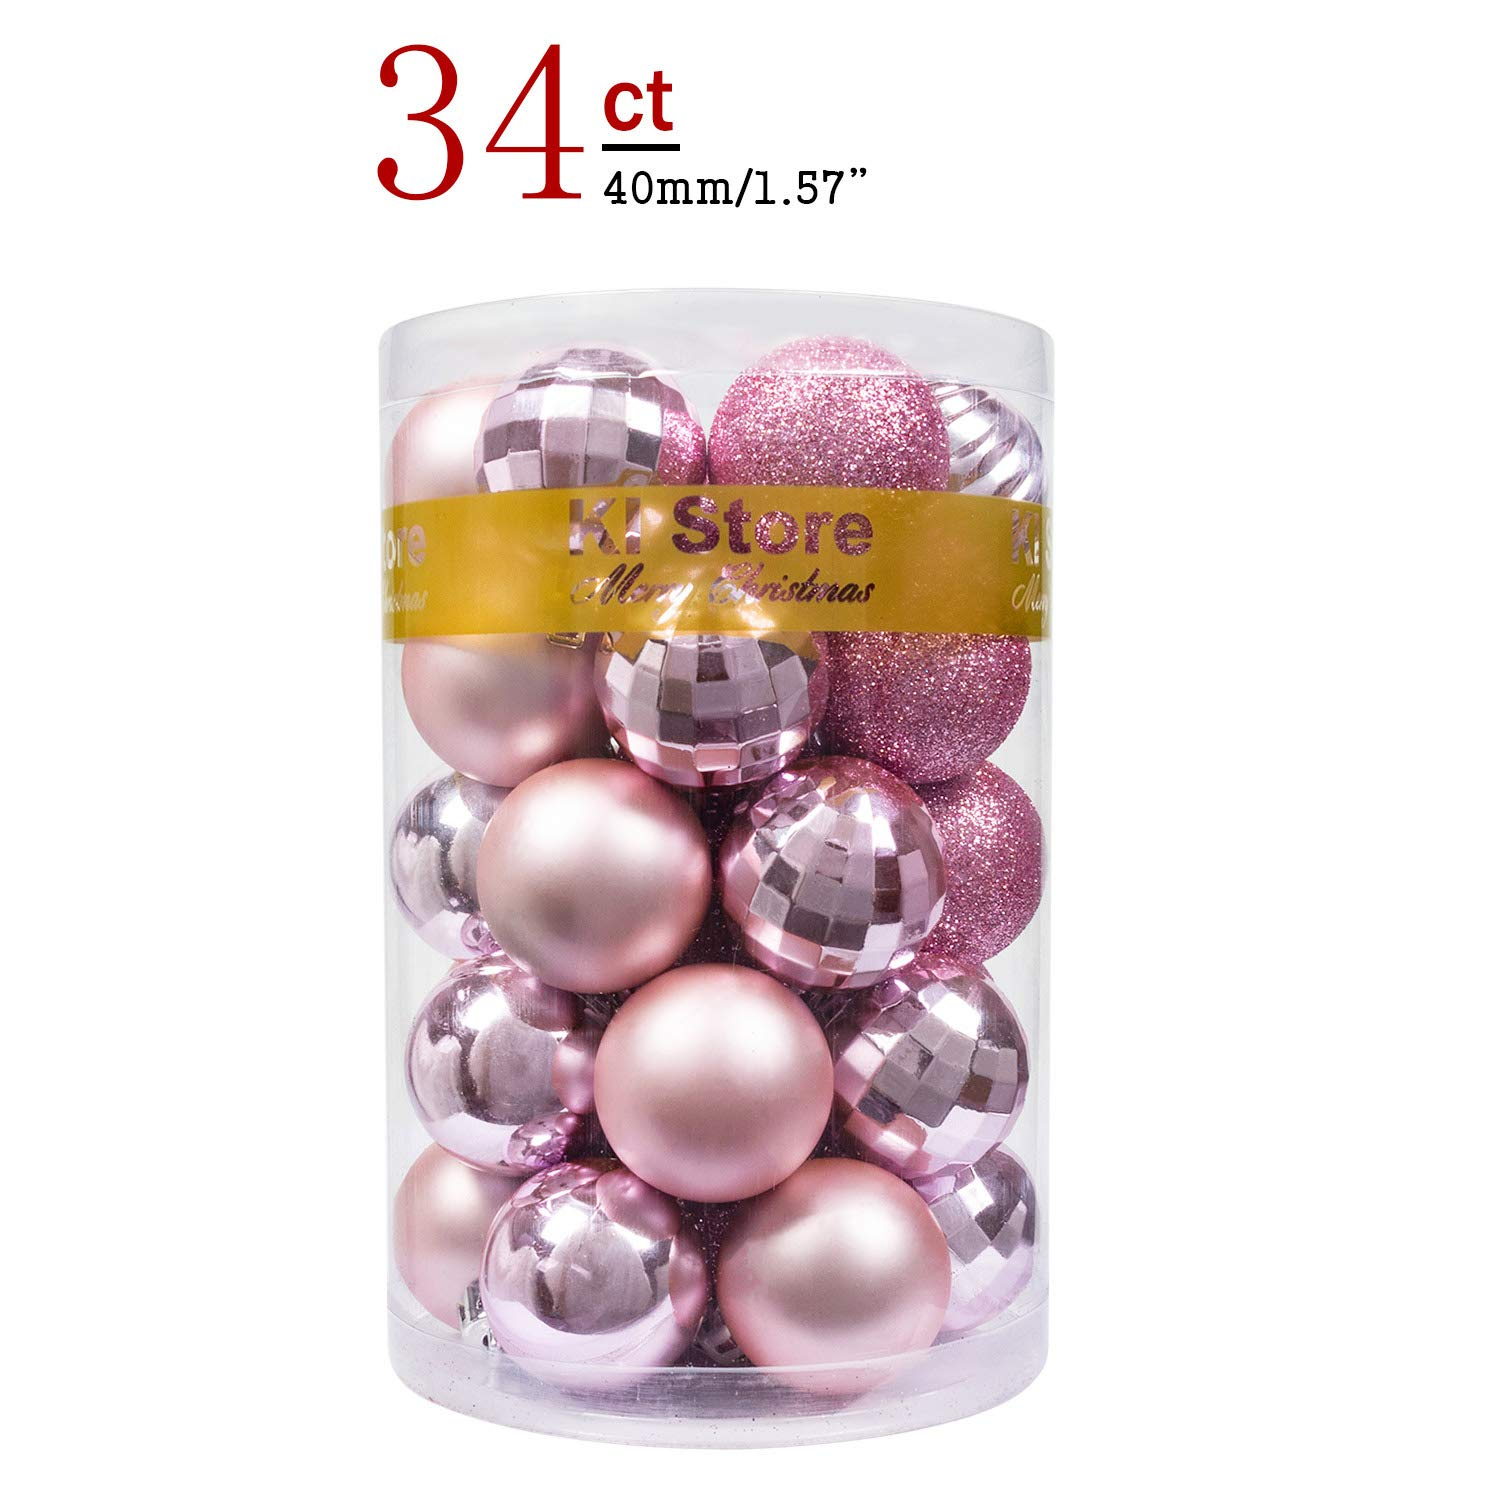 """KI Store 34ct Christmas Ball Ornaments Shatterproof Christmas Decorations Tree Balls Small for Holiday Wedding Party Decoration, Tree Ornaments Hooks Included 1.57"""" (40mm Pink)"""